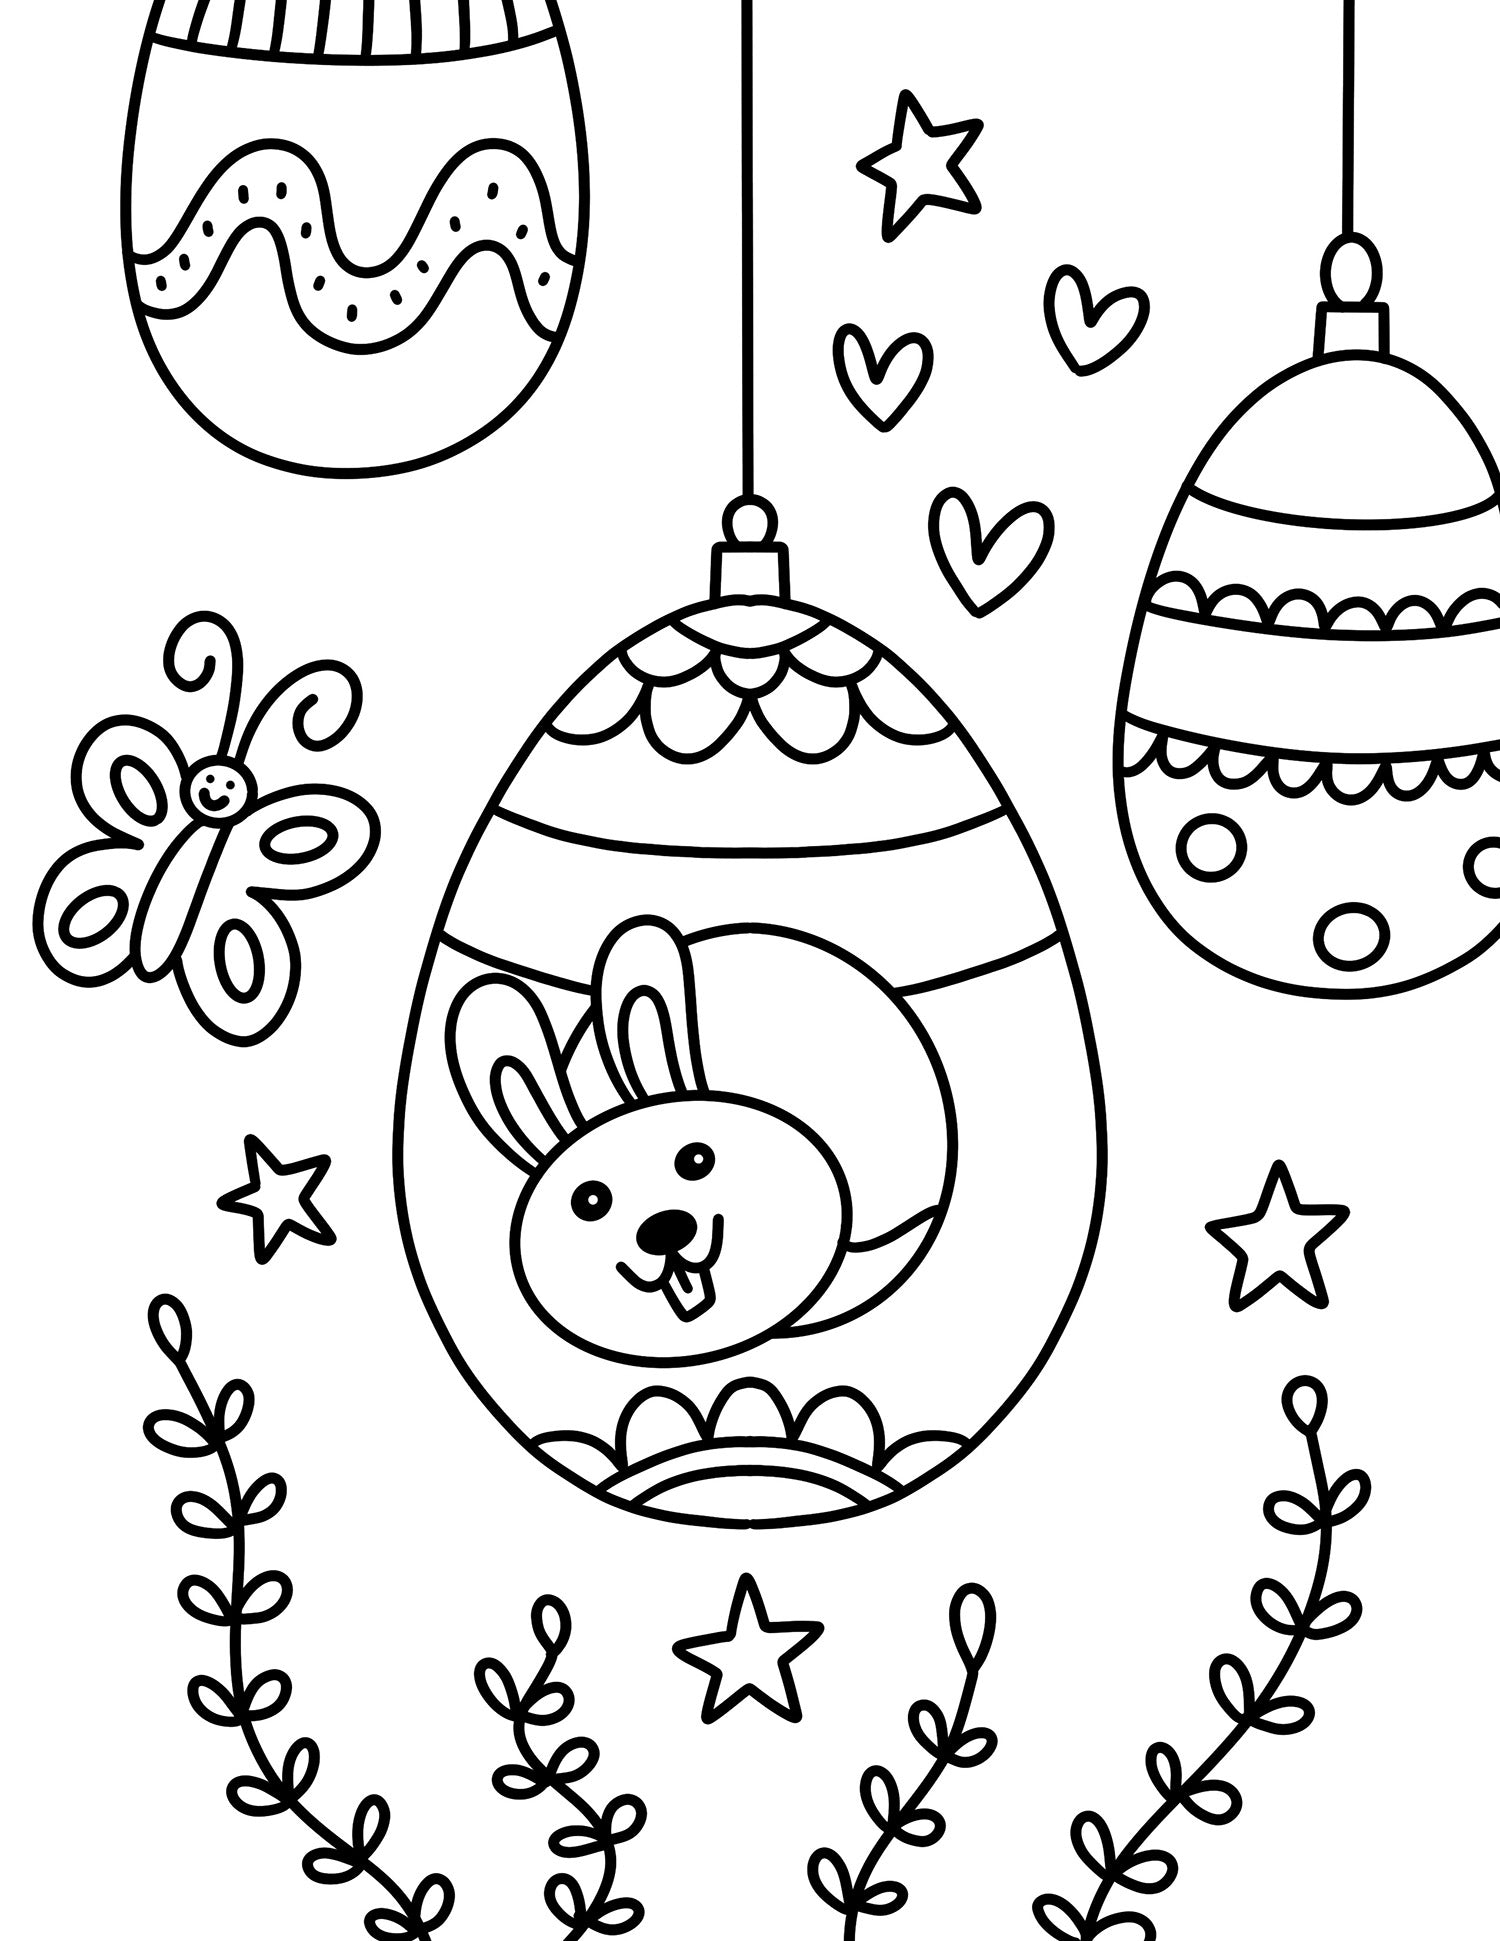 - Easter Coloring Pages For Kids - Free Printable Free Download